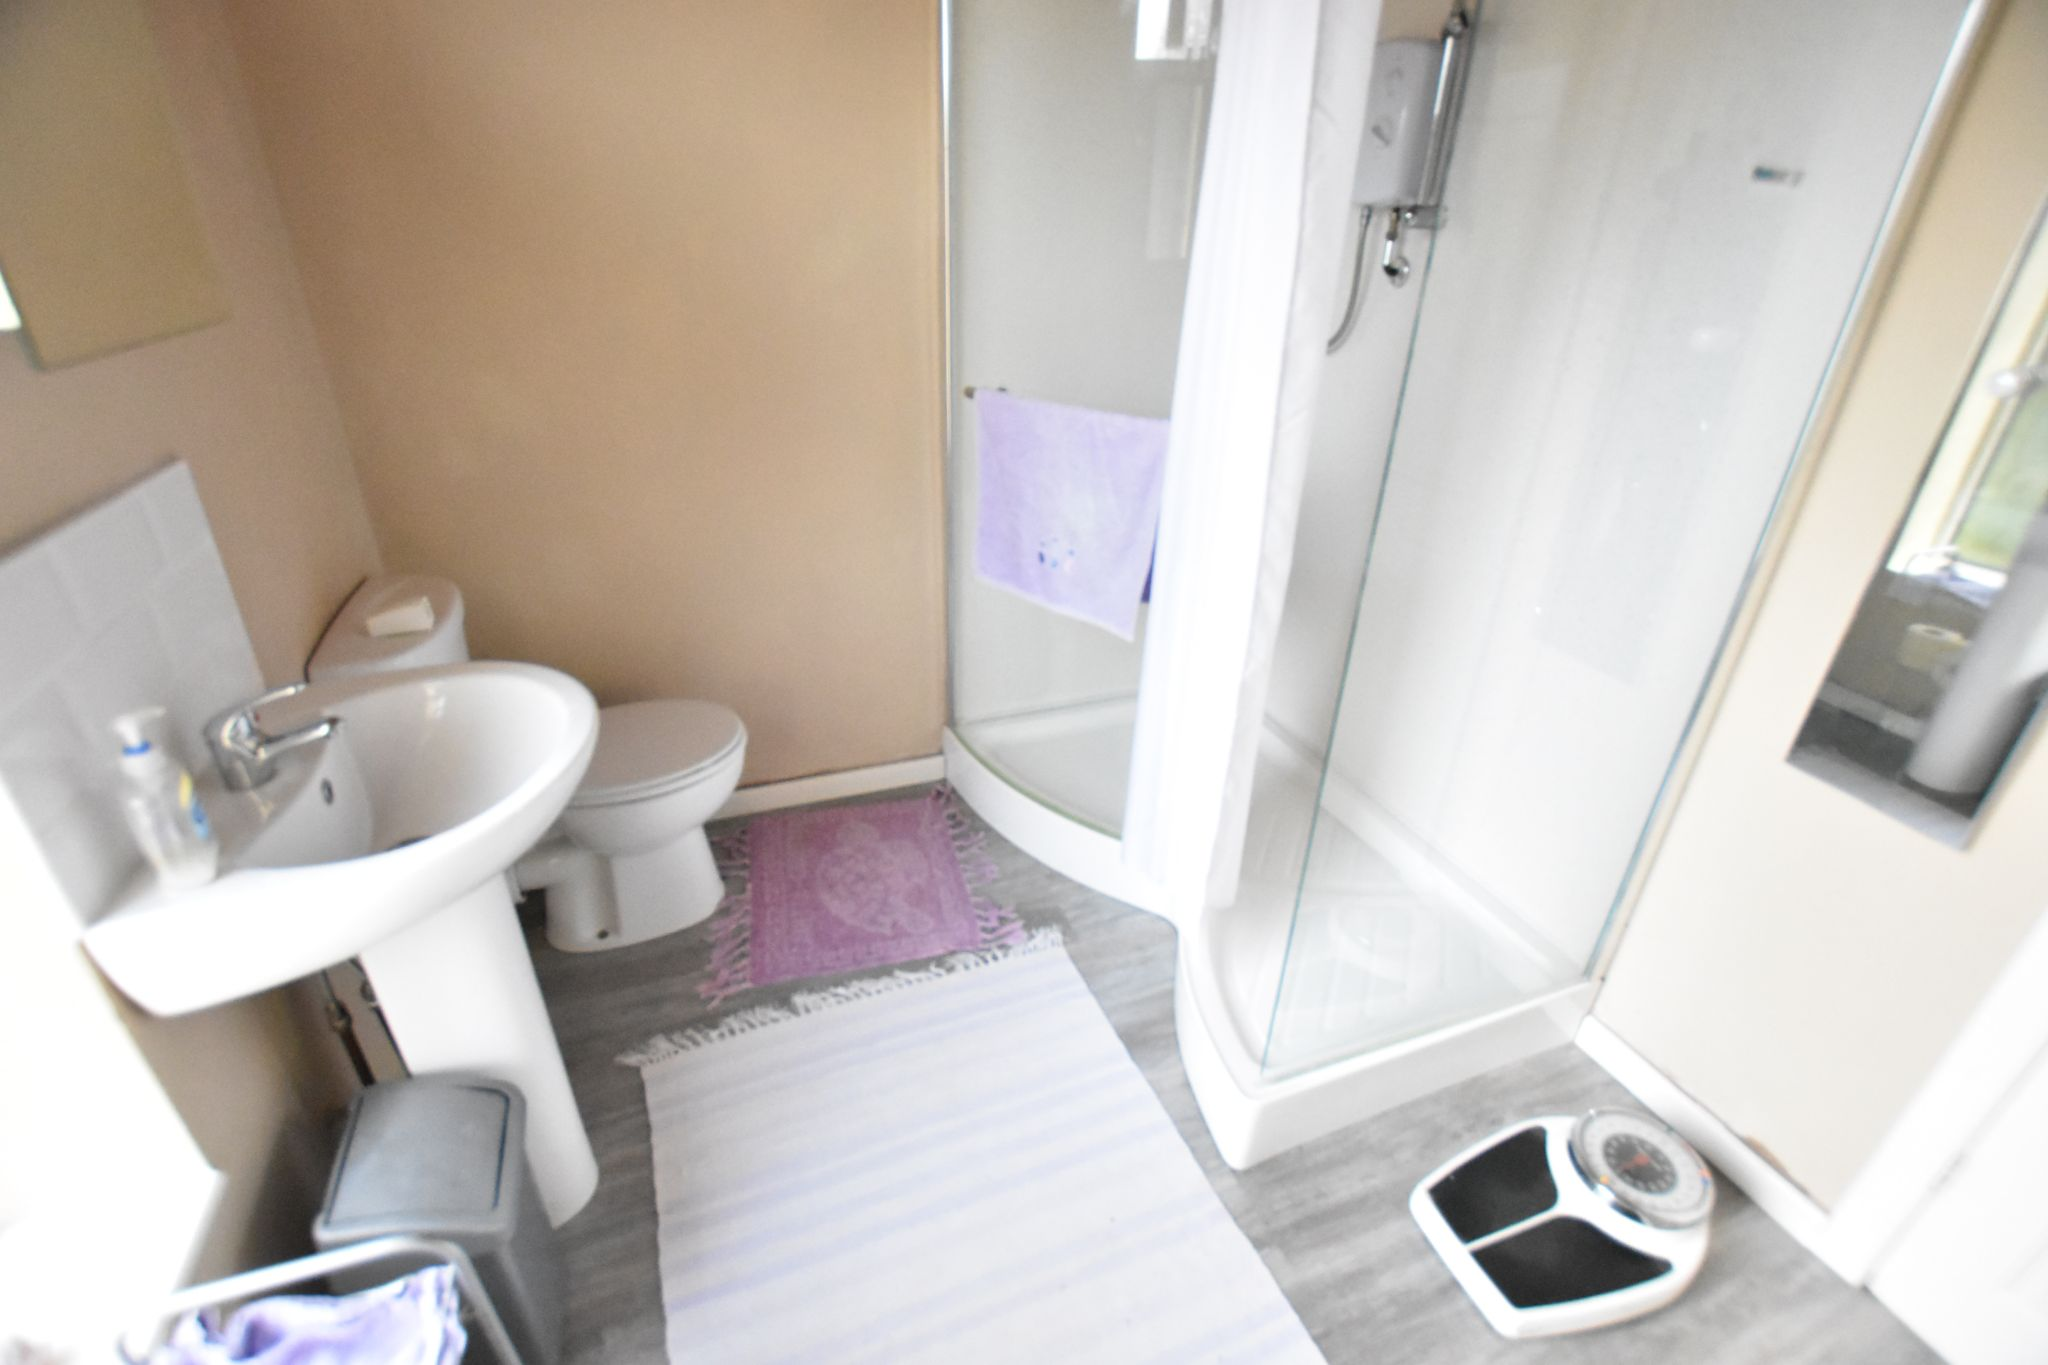 Image 2 of 4 of BATHROOM, on Accommodation Comprising for